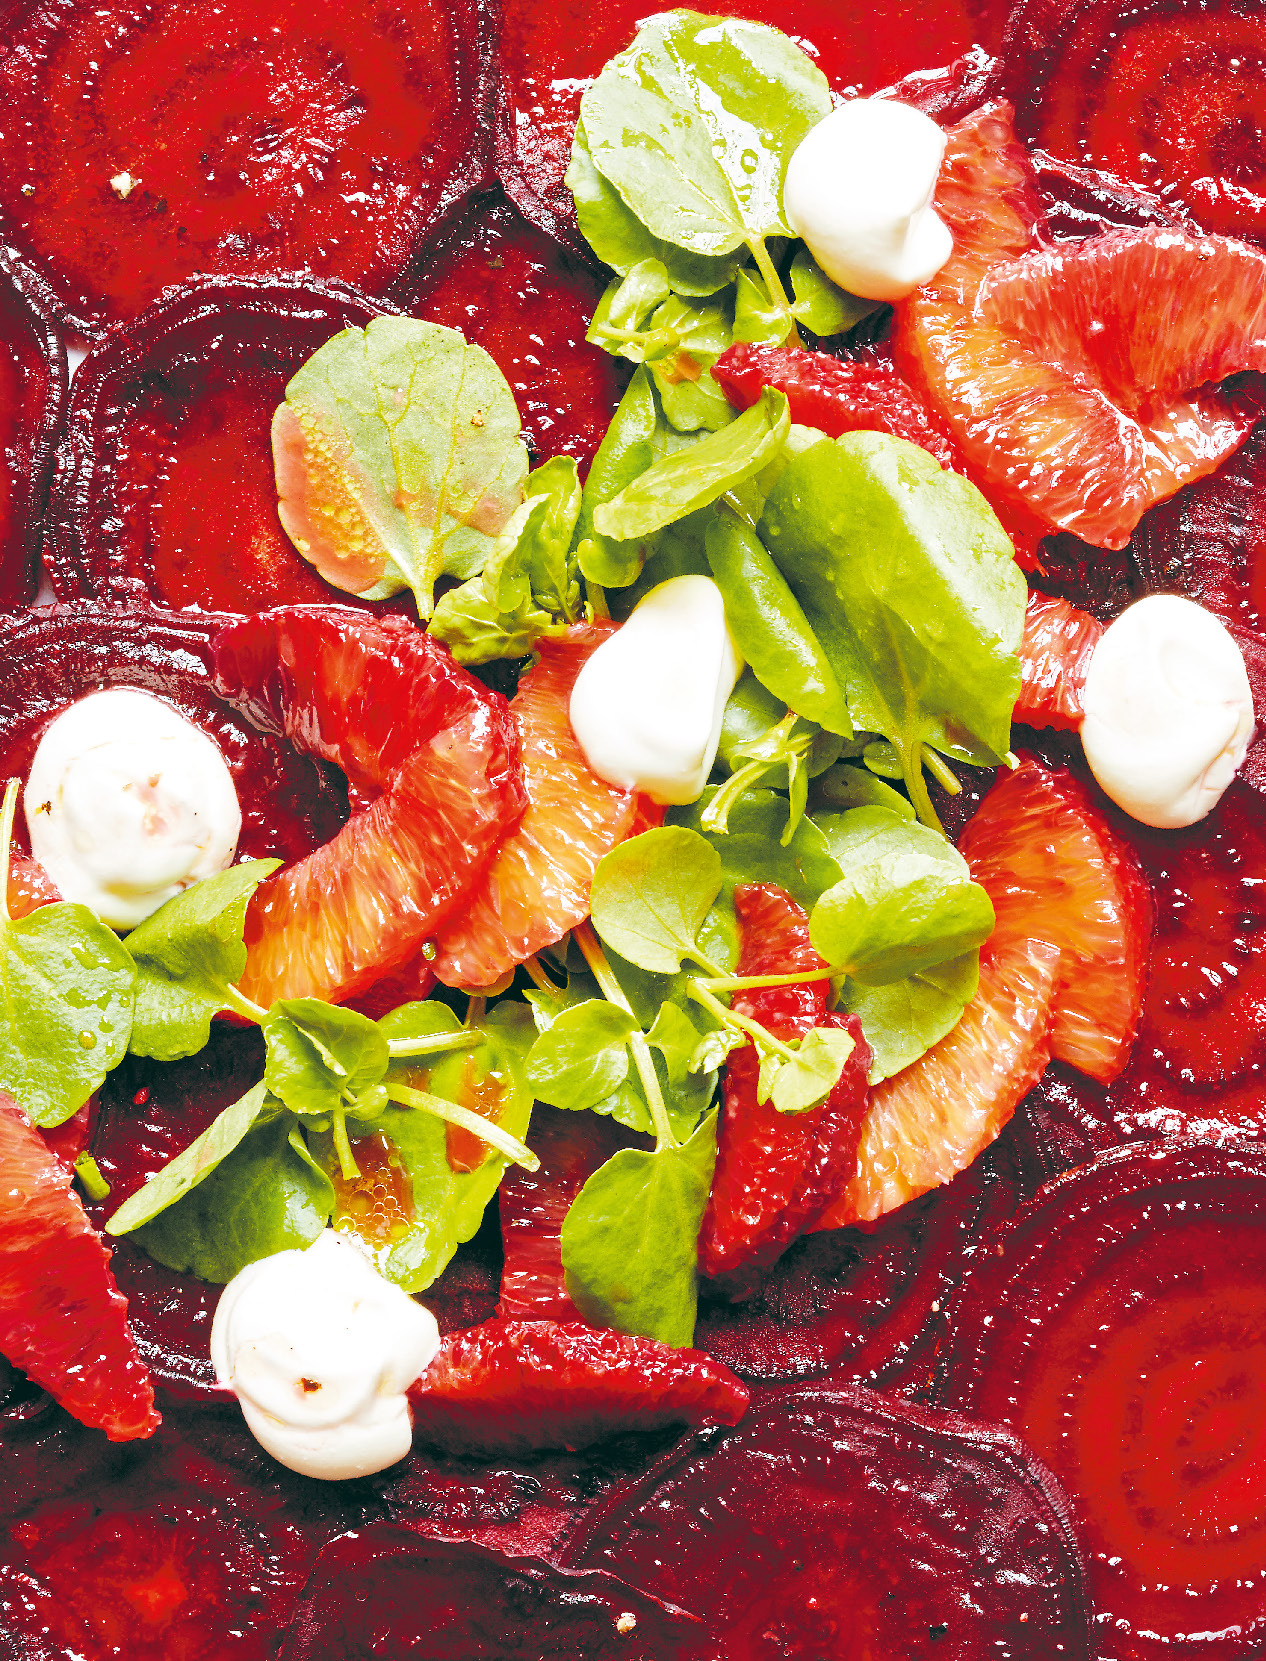 Roasted beetroot carpaccio with goat's curd and blood orange dressing